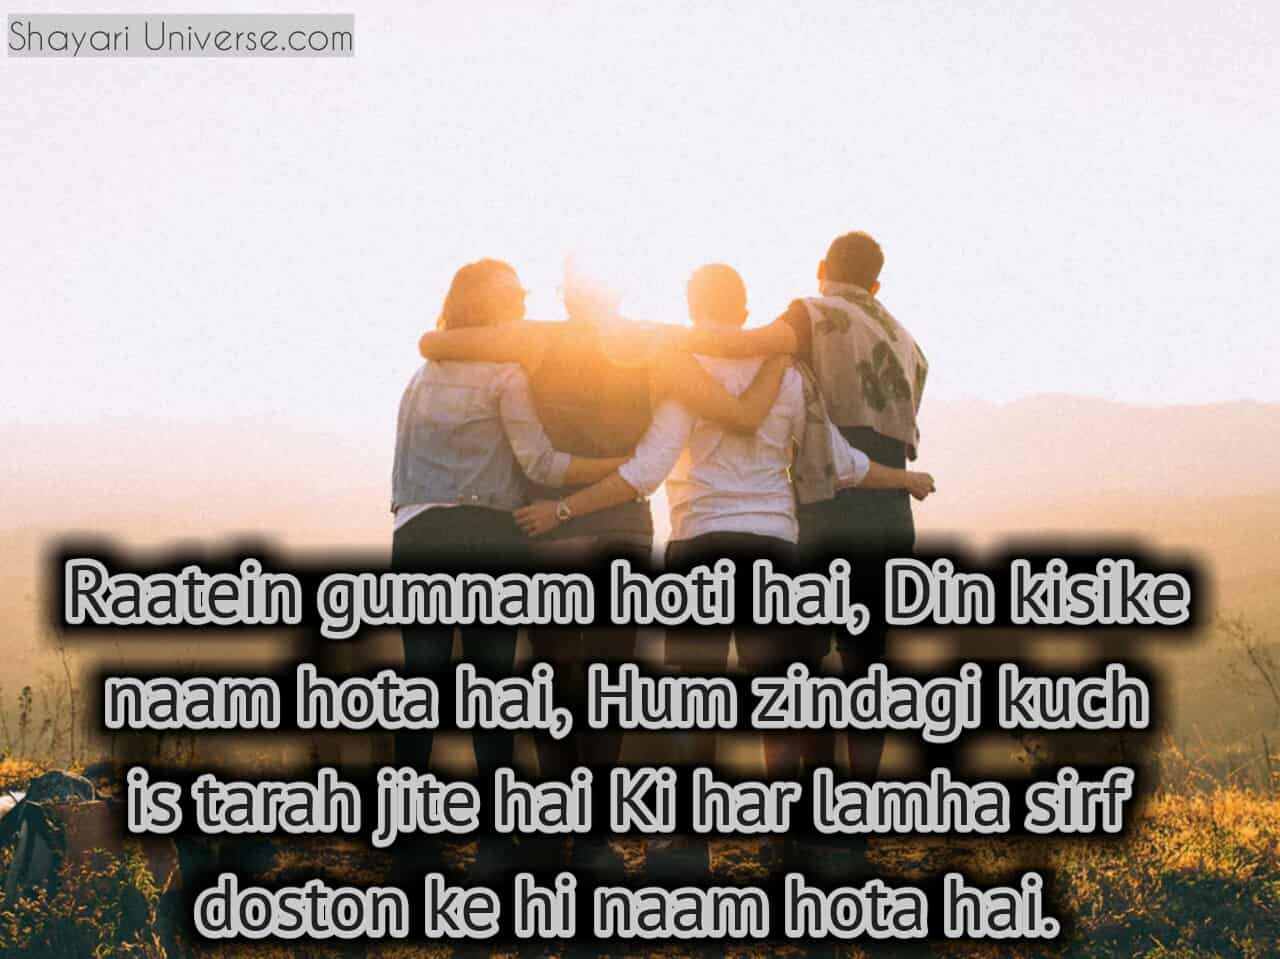 shayari on friendship in english